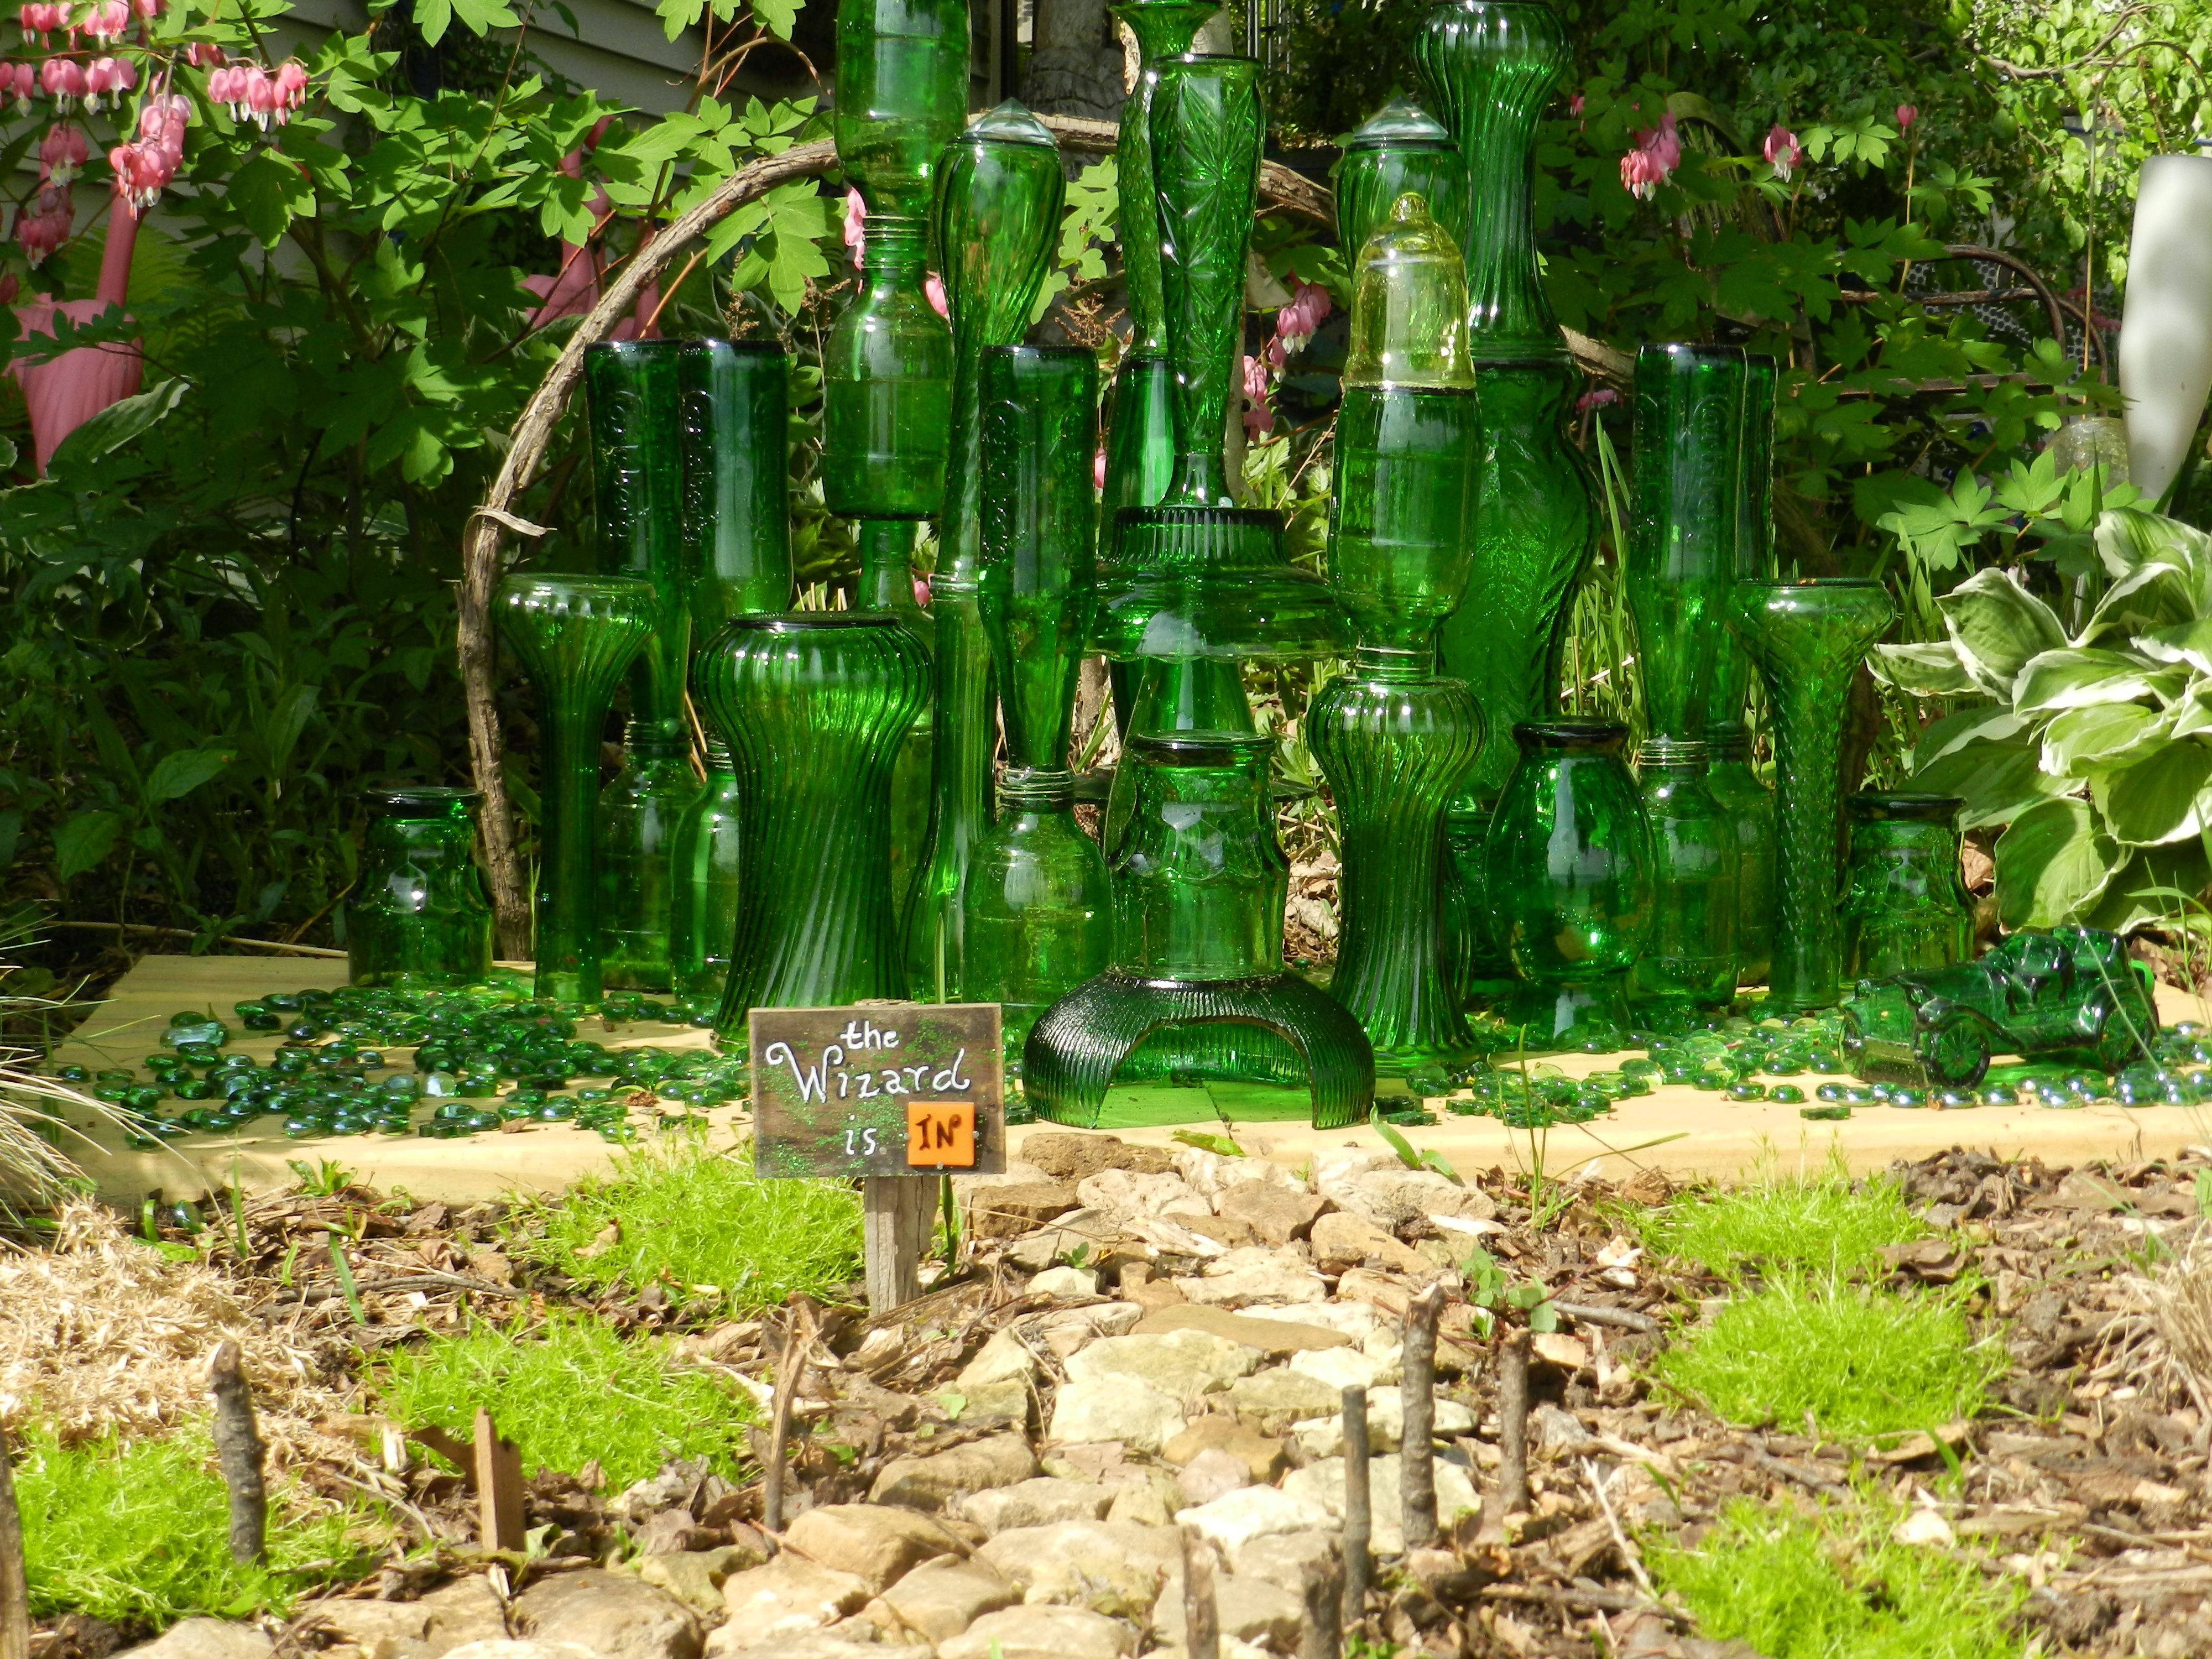 Gnome In Garden: Glass Emerald City -- The Wizard Is In! These Are Beer